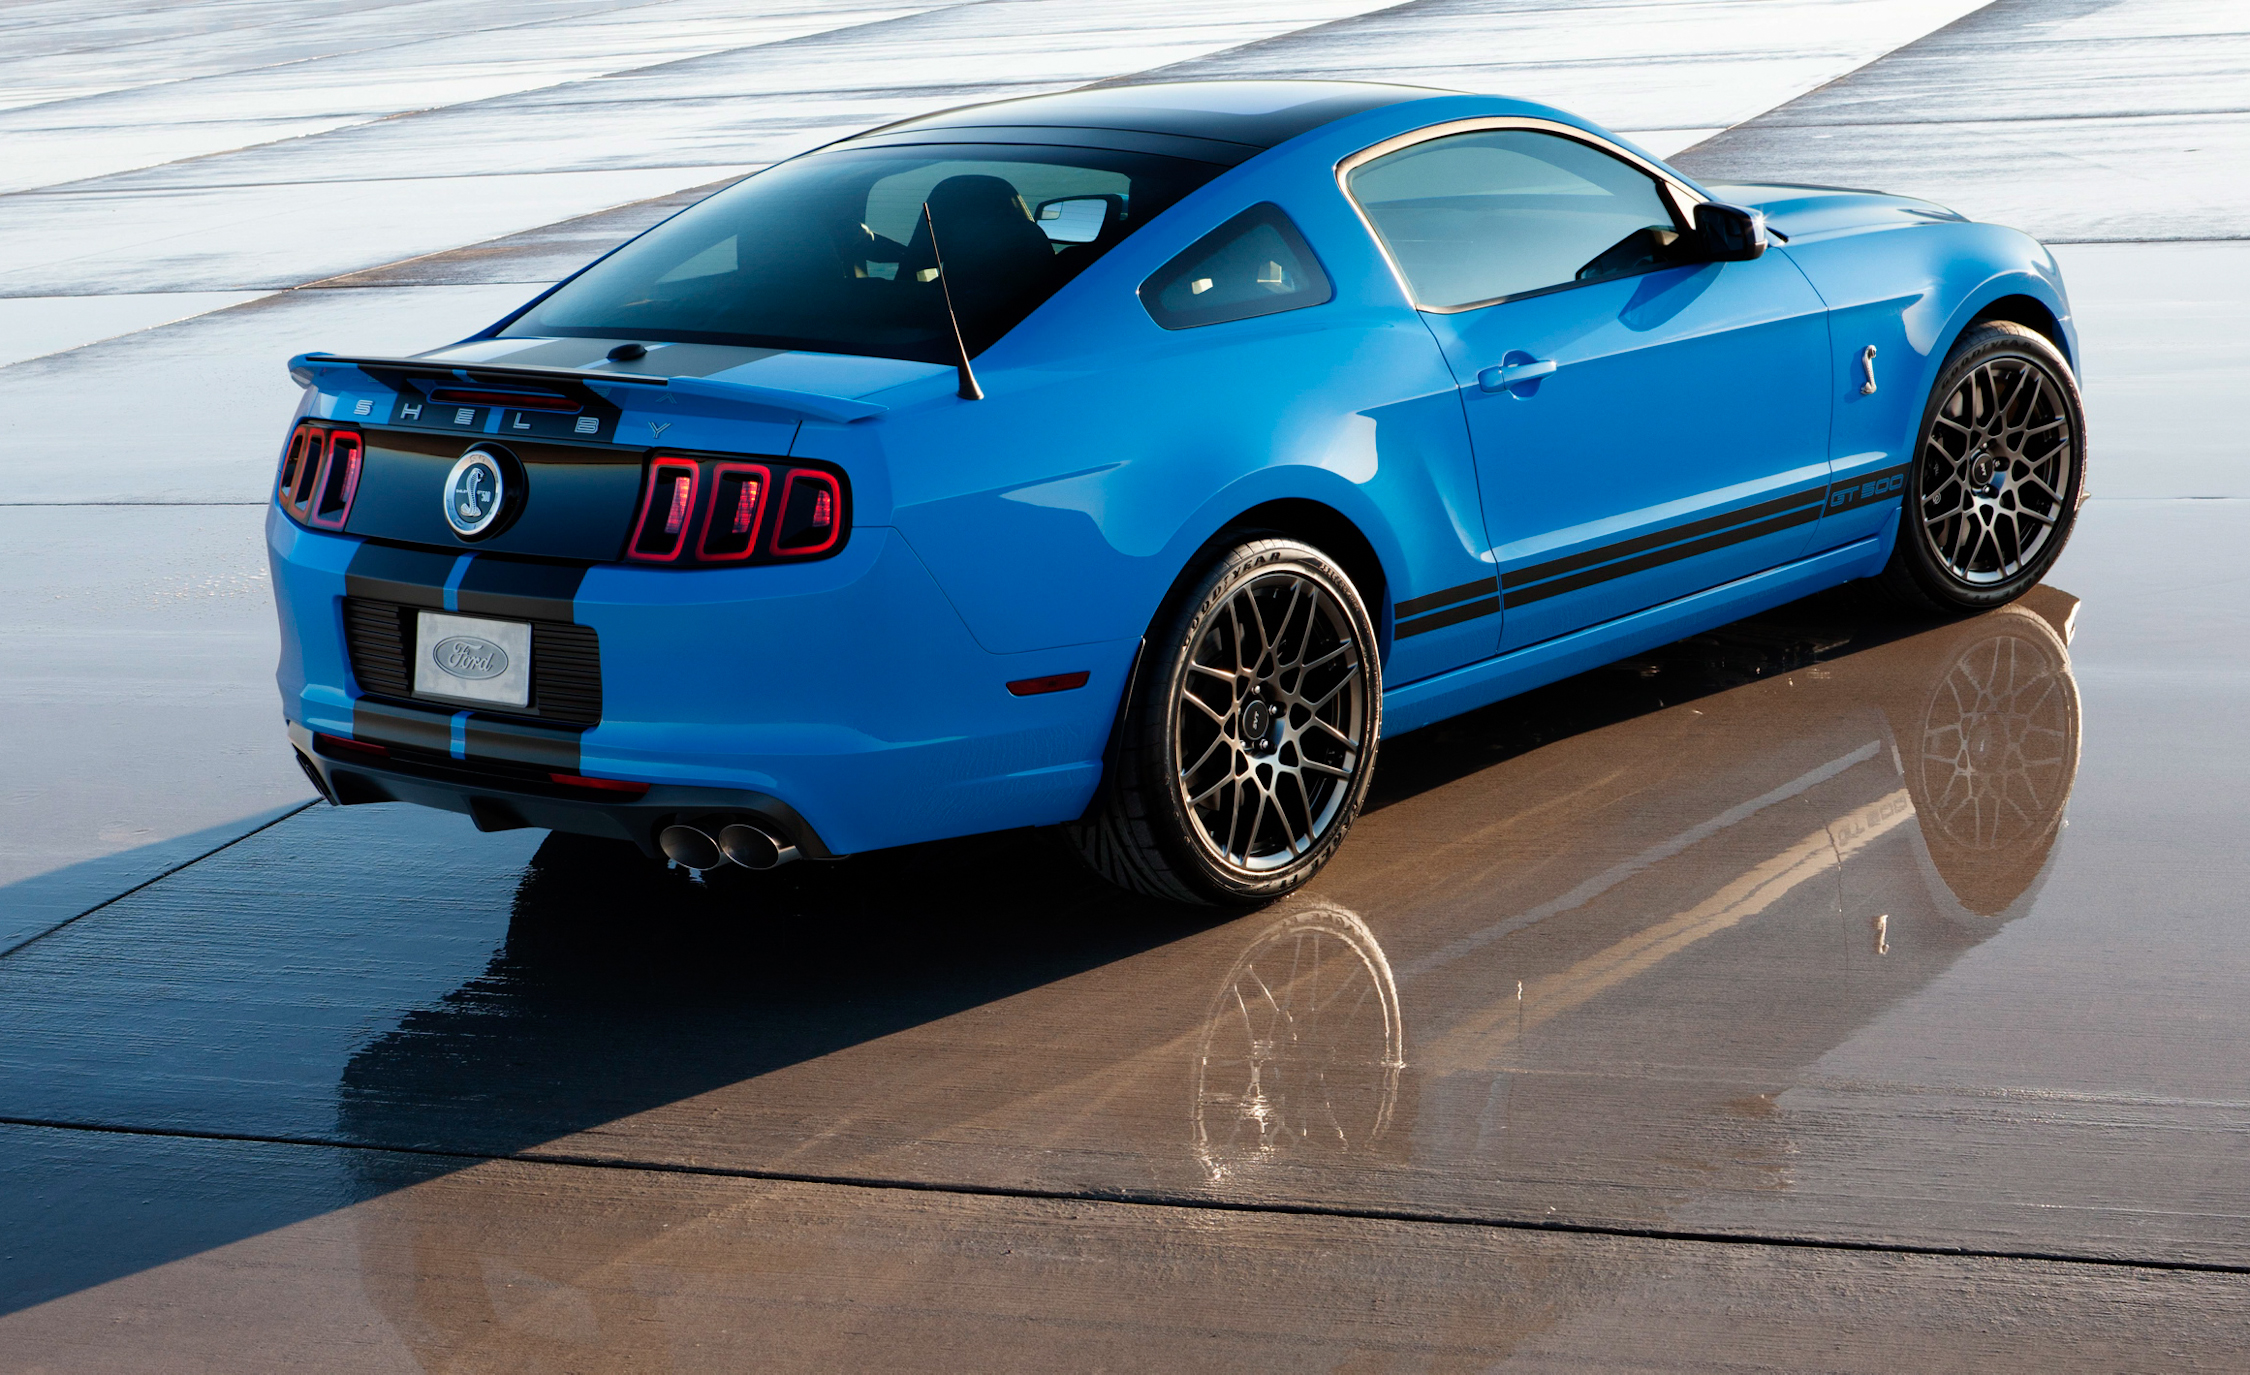 2013 Ford Mustang Shelby GT500 Blue Exterior Rear And Side (View 15 of 47)